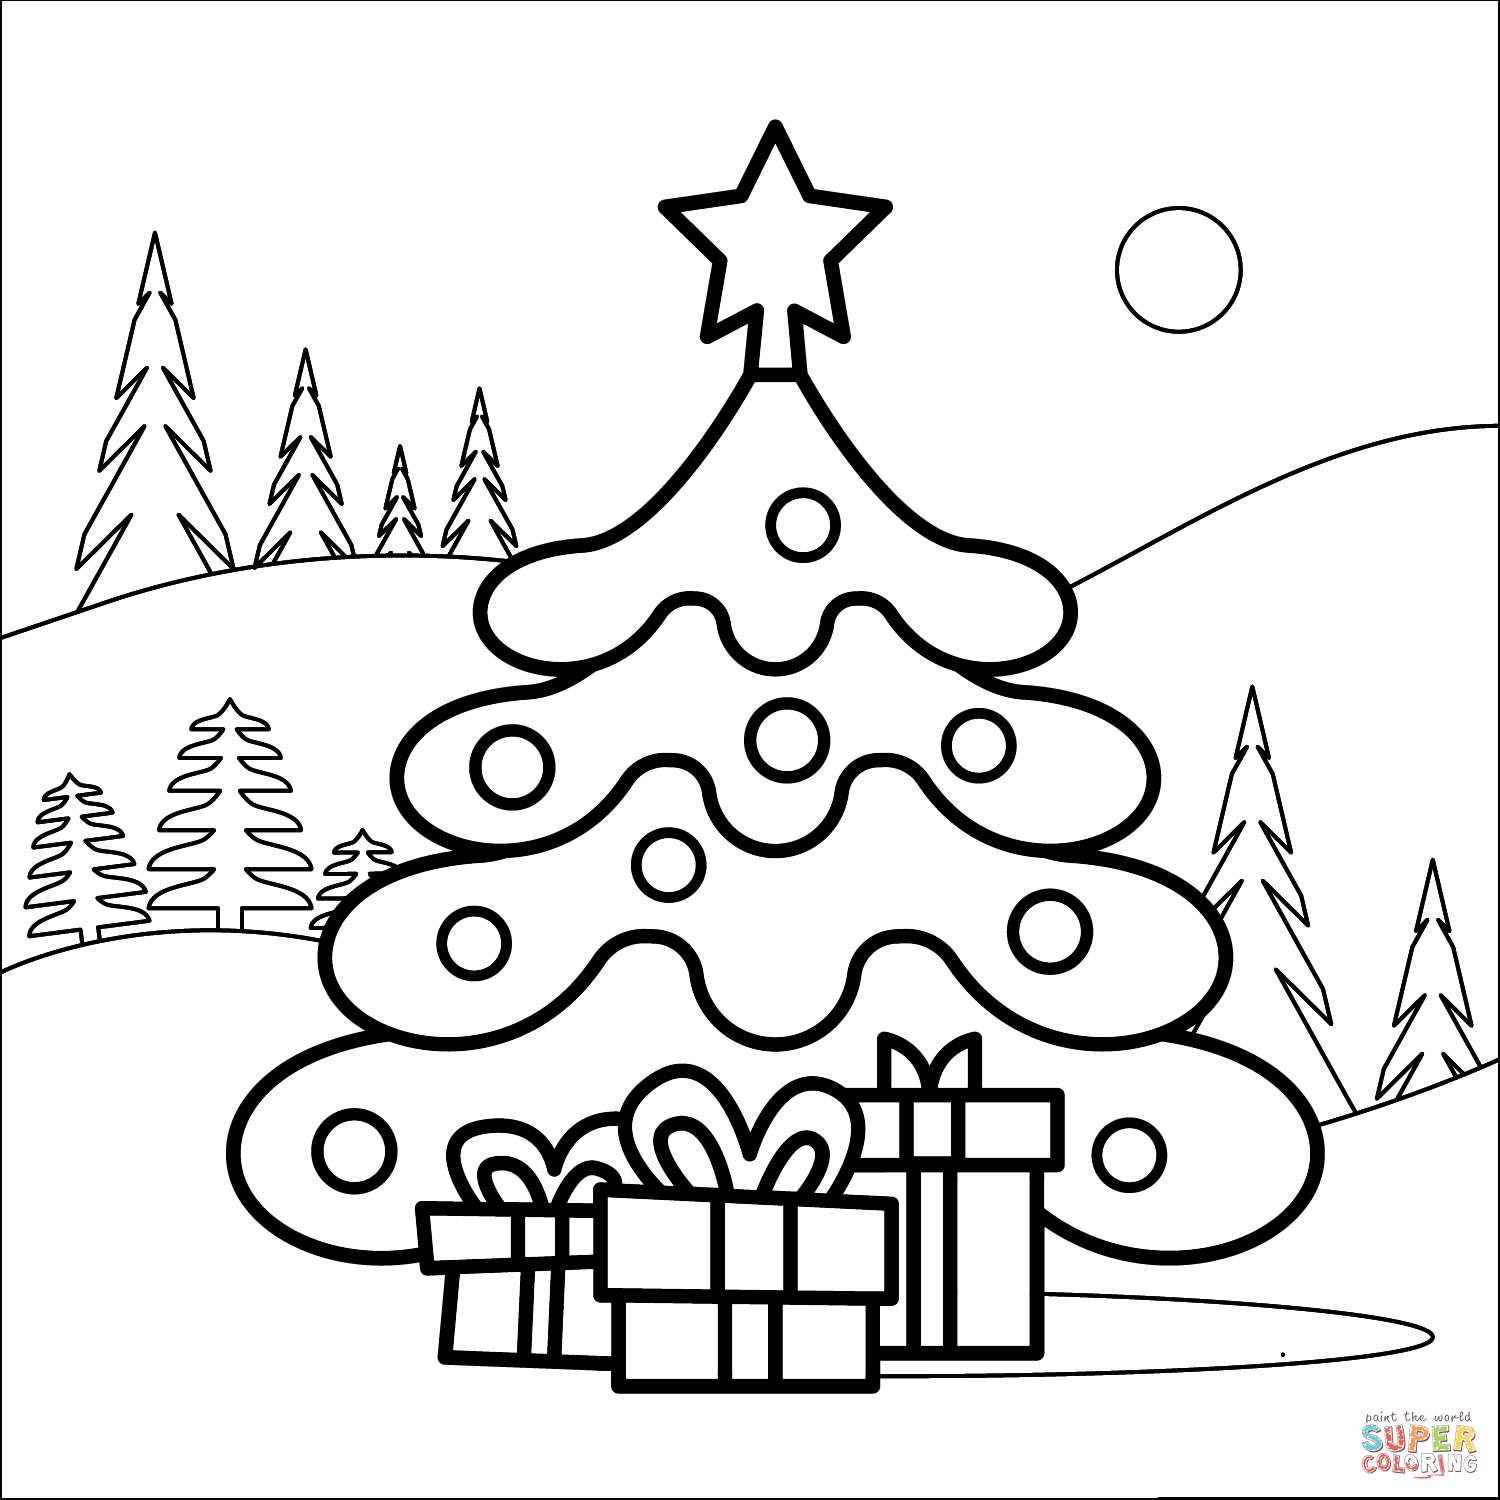 free christmas tree coloring for the kids supercoloring flower string international coloring pages Coloring Page Christmas Tree